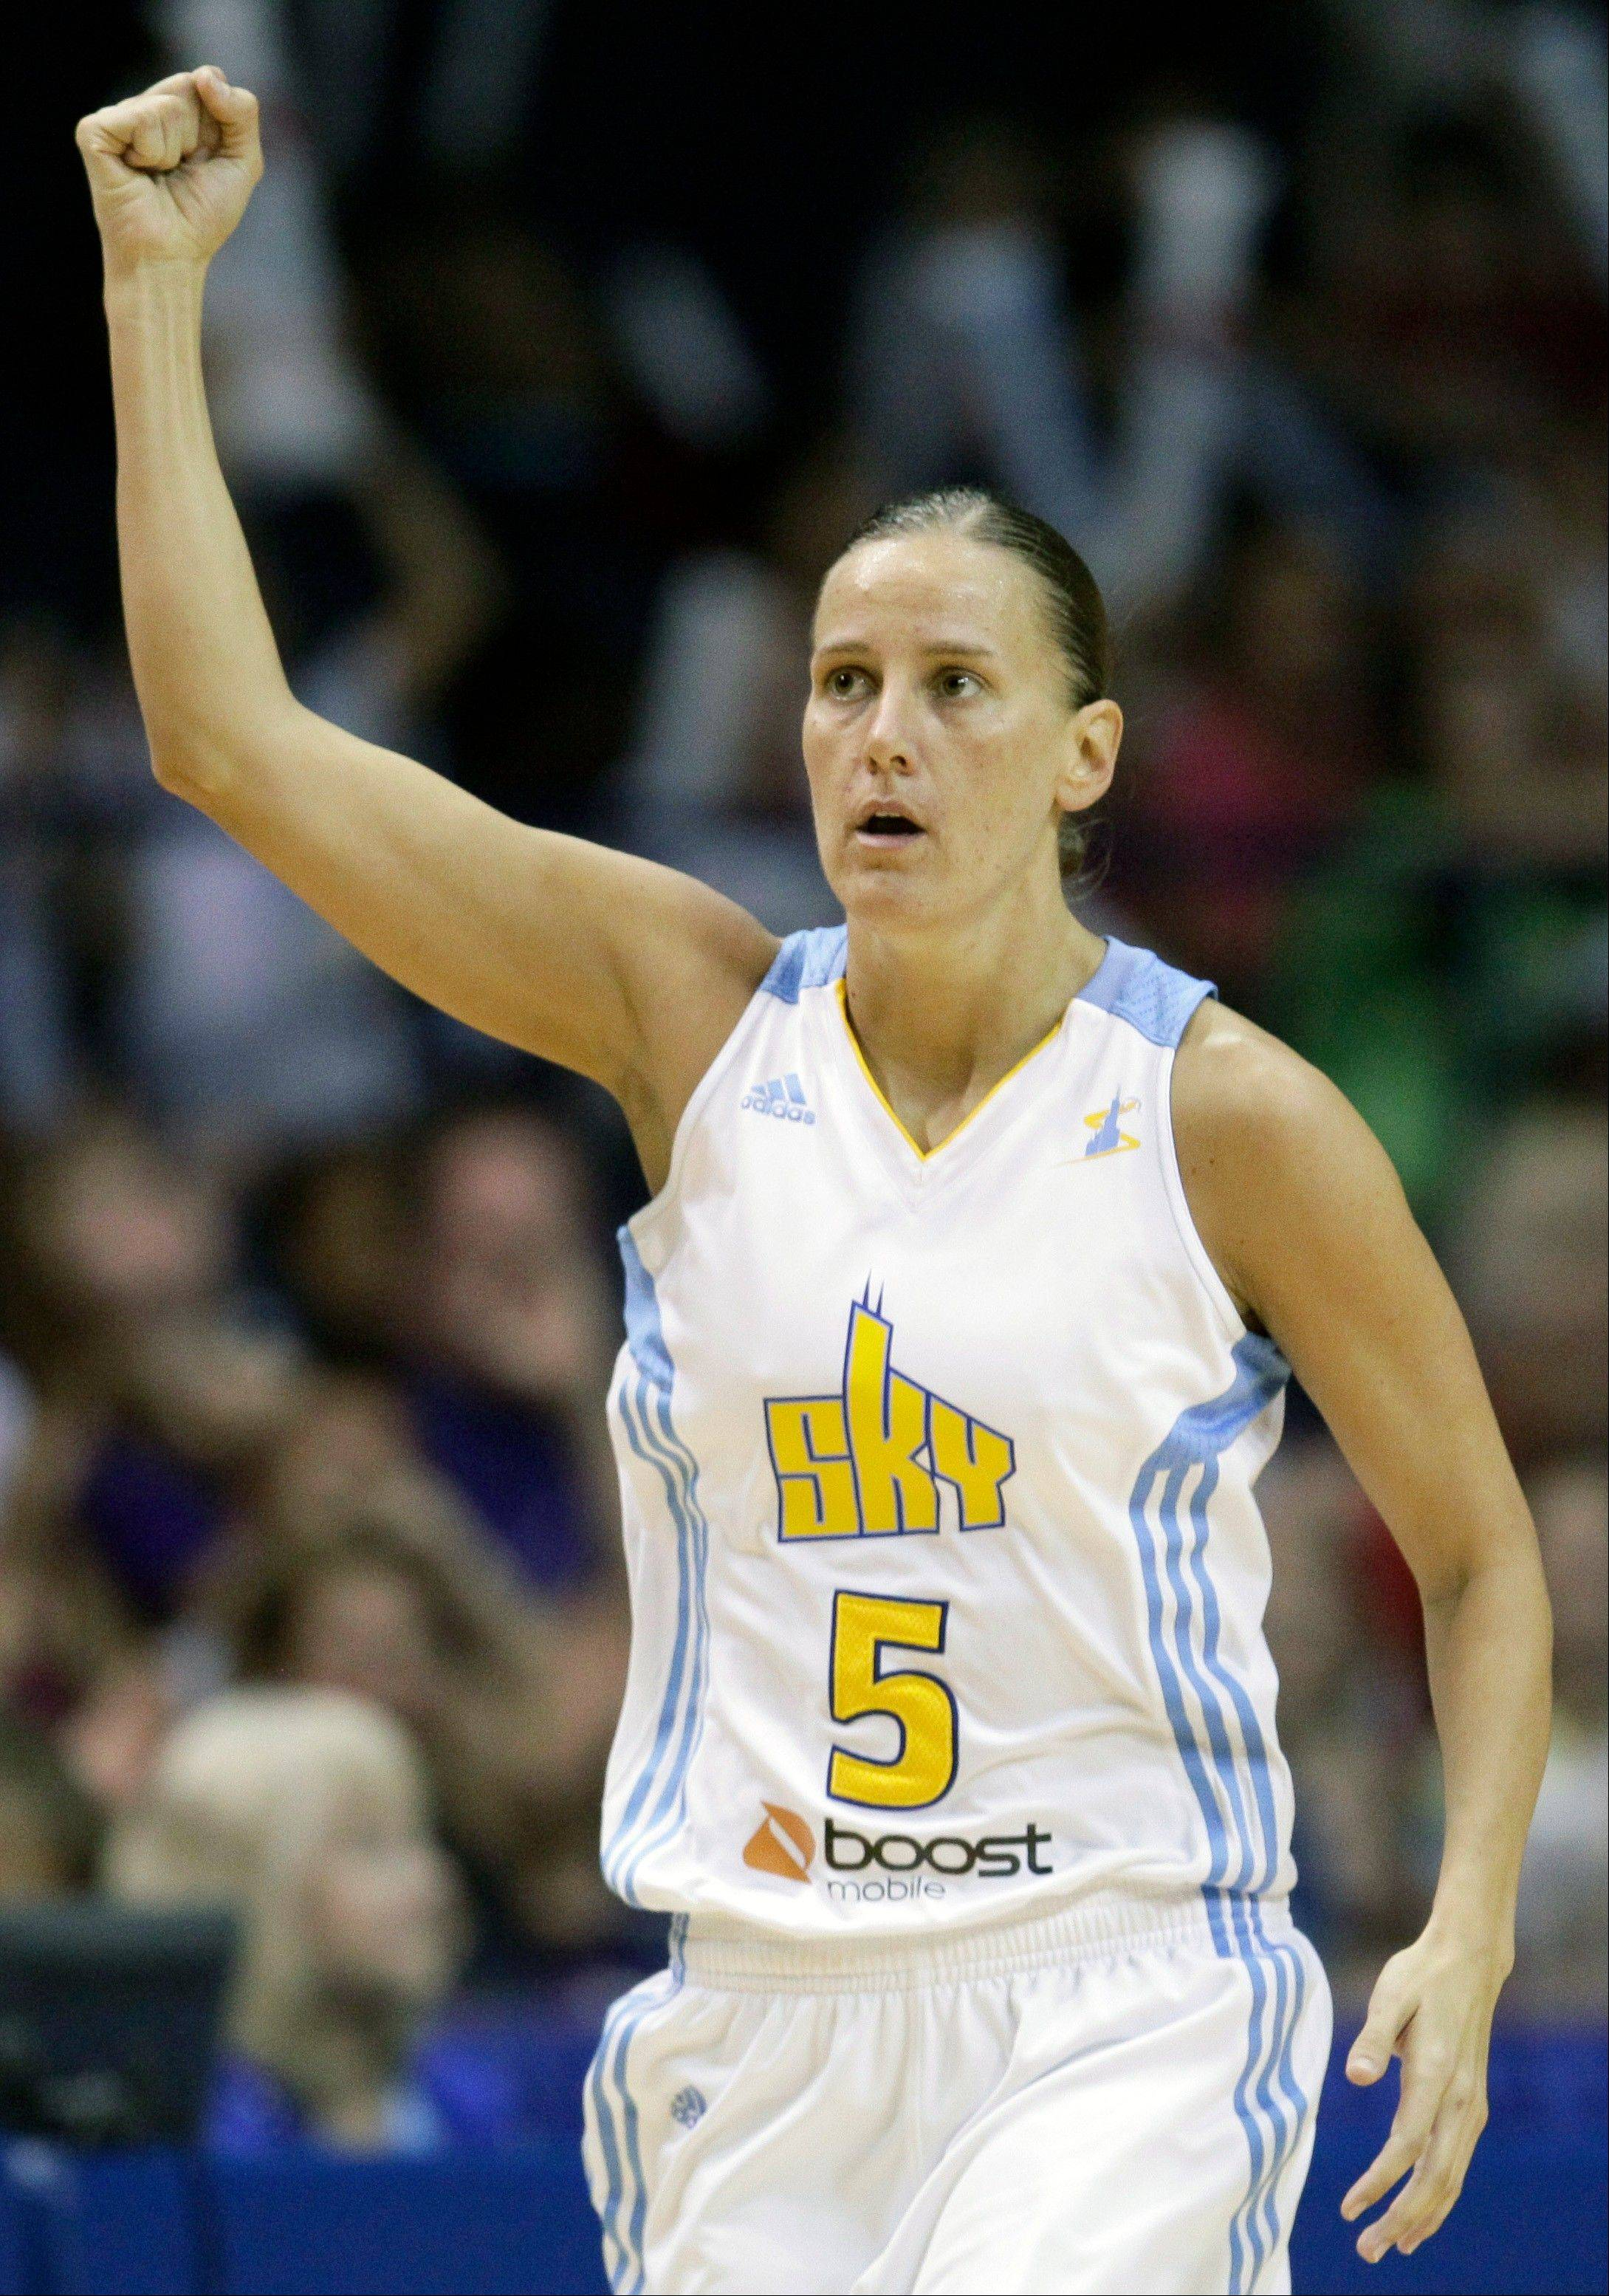 Chicago Sky's Erin Thorn celebrates after scoring a three- points shot during the fourth quarter of an WNBA basketball game against the New York Liberty on Sunday, Aug. 28, 2011, in Rosemont, Ill. The Sky won 74-73.